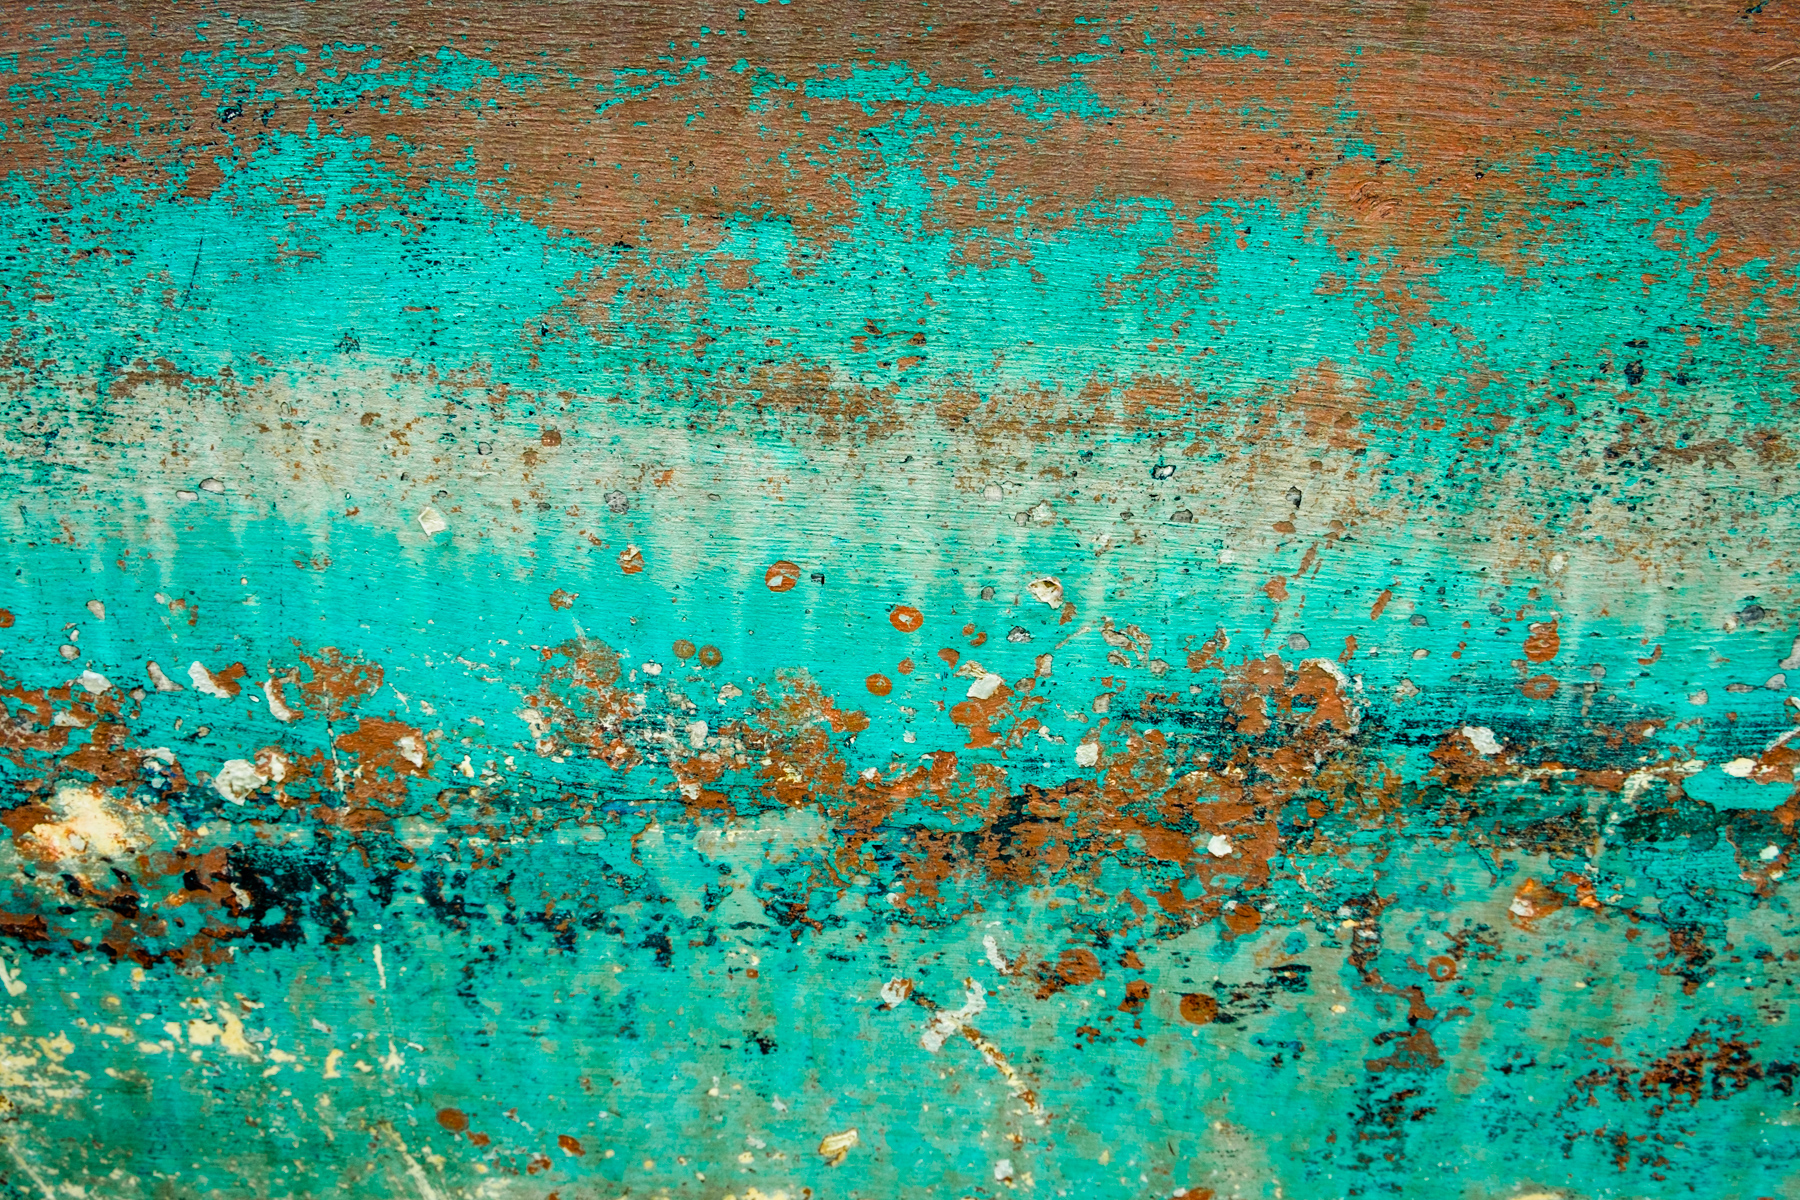 Indian Ocean, Mauritius, abstract, abstract photography, boat, boats, colors, colour block, colours, contemporary art, old paint, wall art